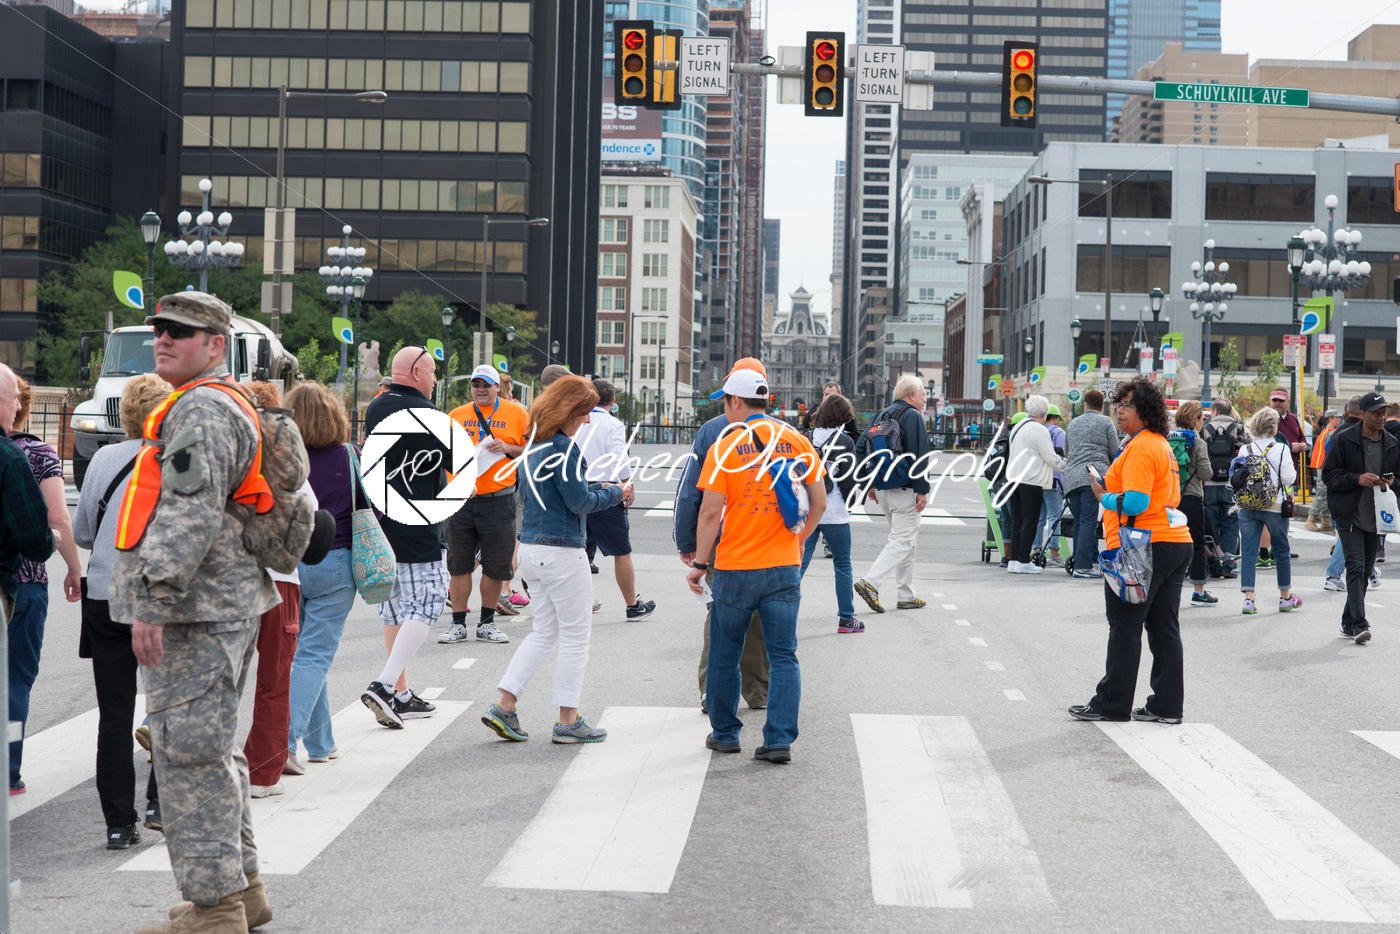 PHILADELPHIA, PA – SEPTEMBER 26: Crowds of people arrive on the Benjamin Franklin Parkway in Center City Philadelphia to see Pope Francis at the World Meeting of Families on September 26, 2015 - Kelleher Photography Store